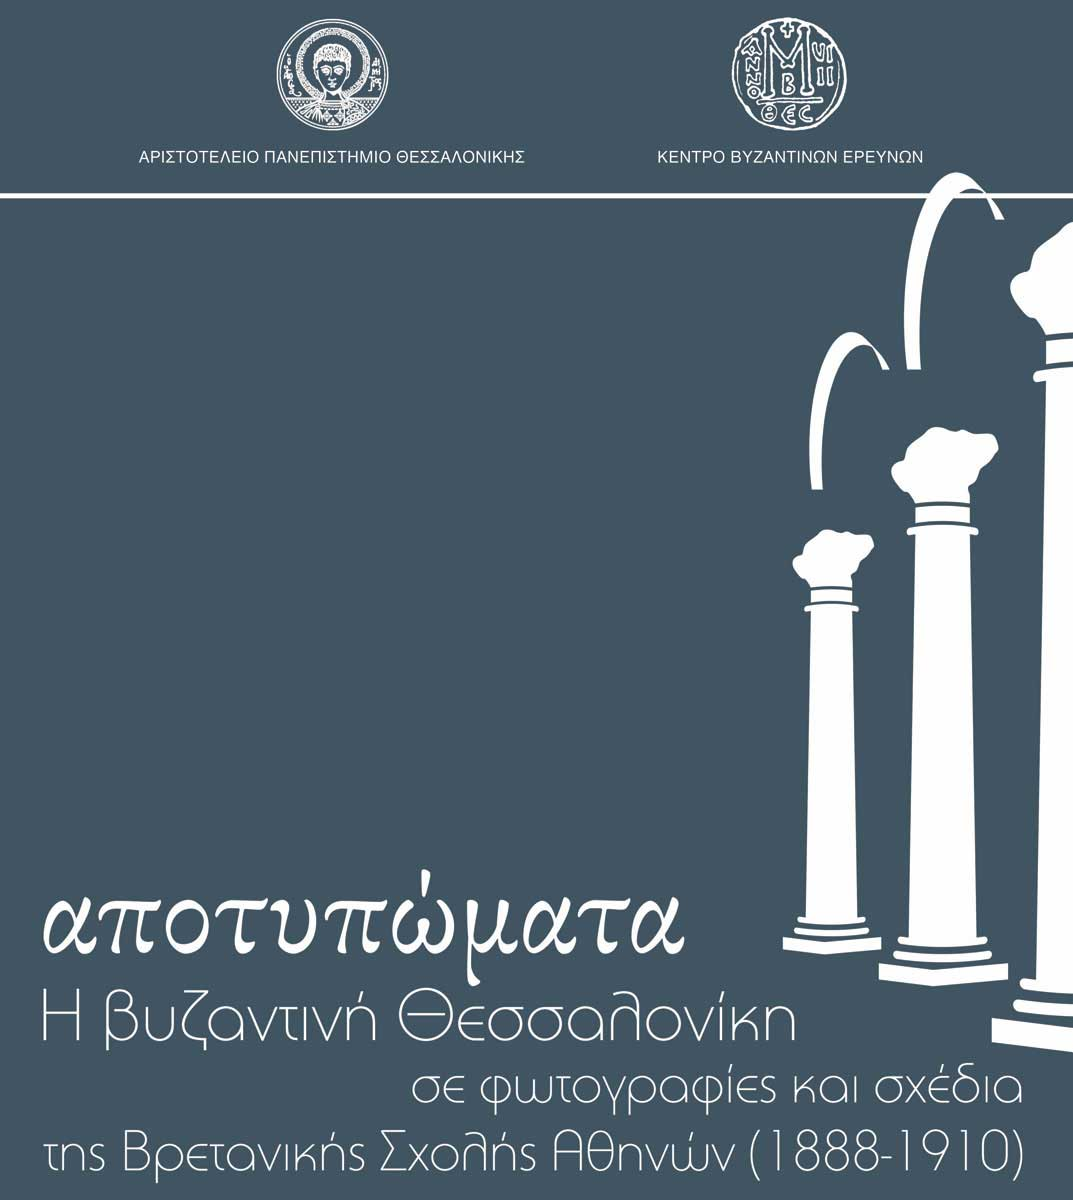 The exhibition's poster.